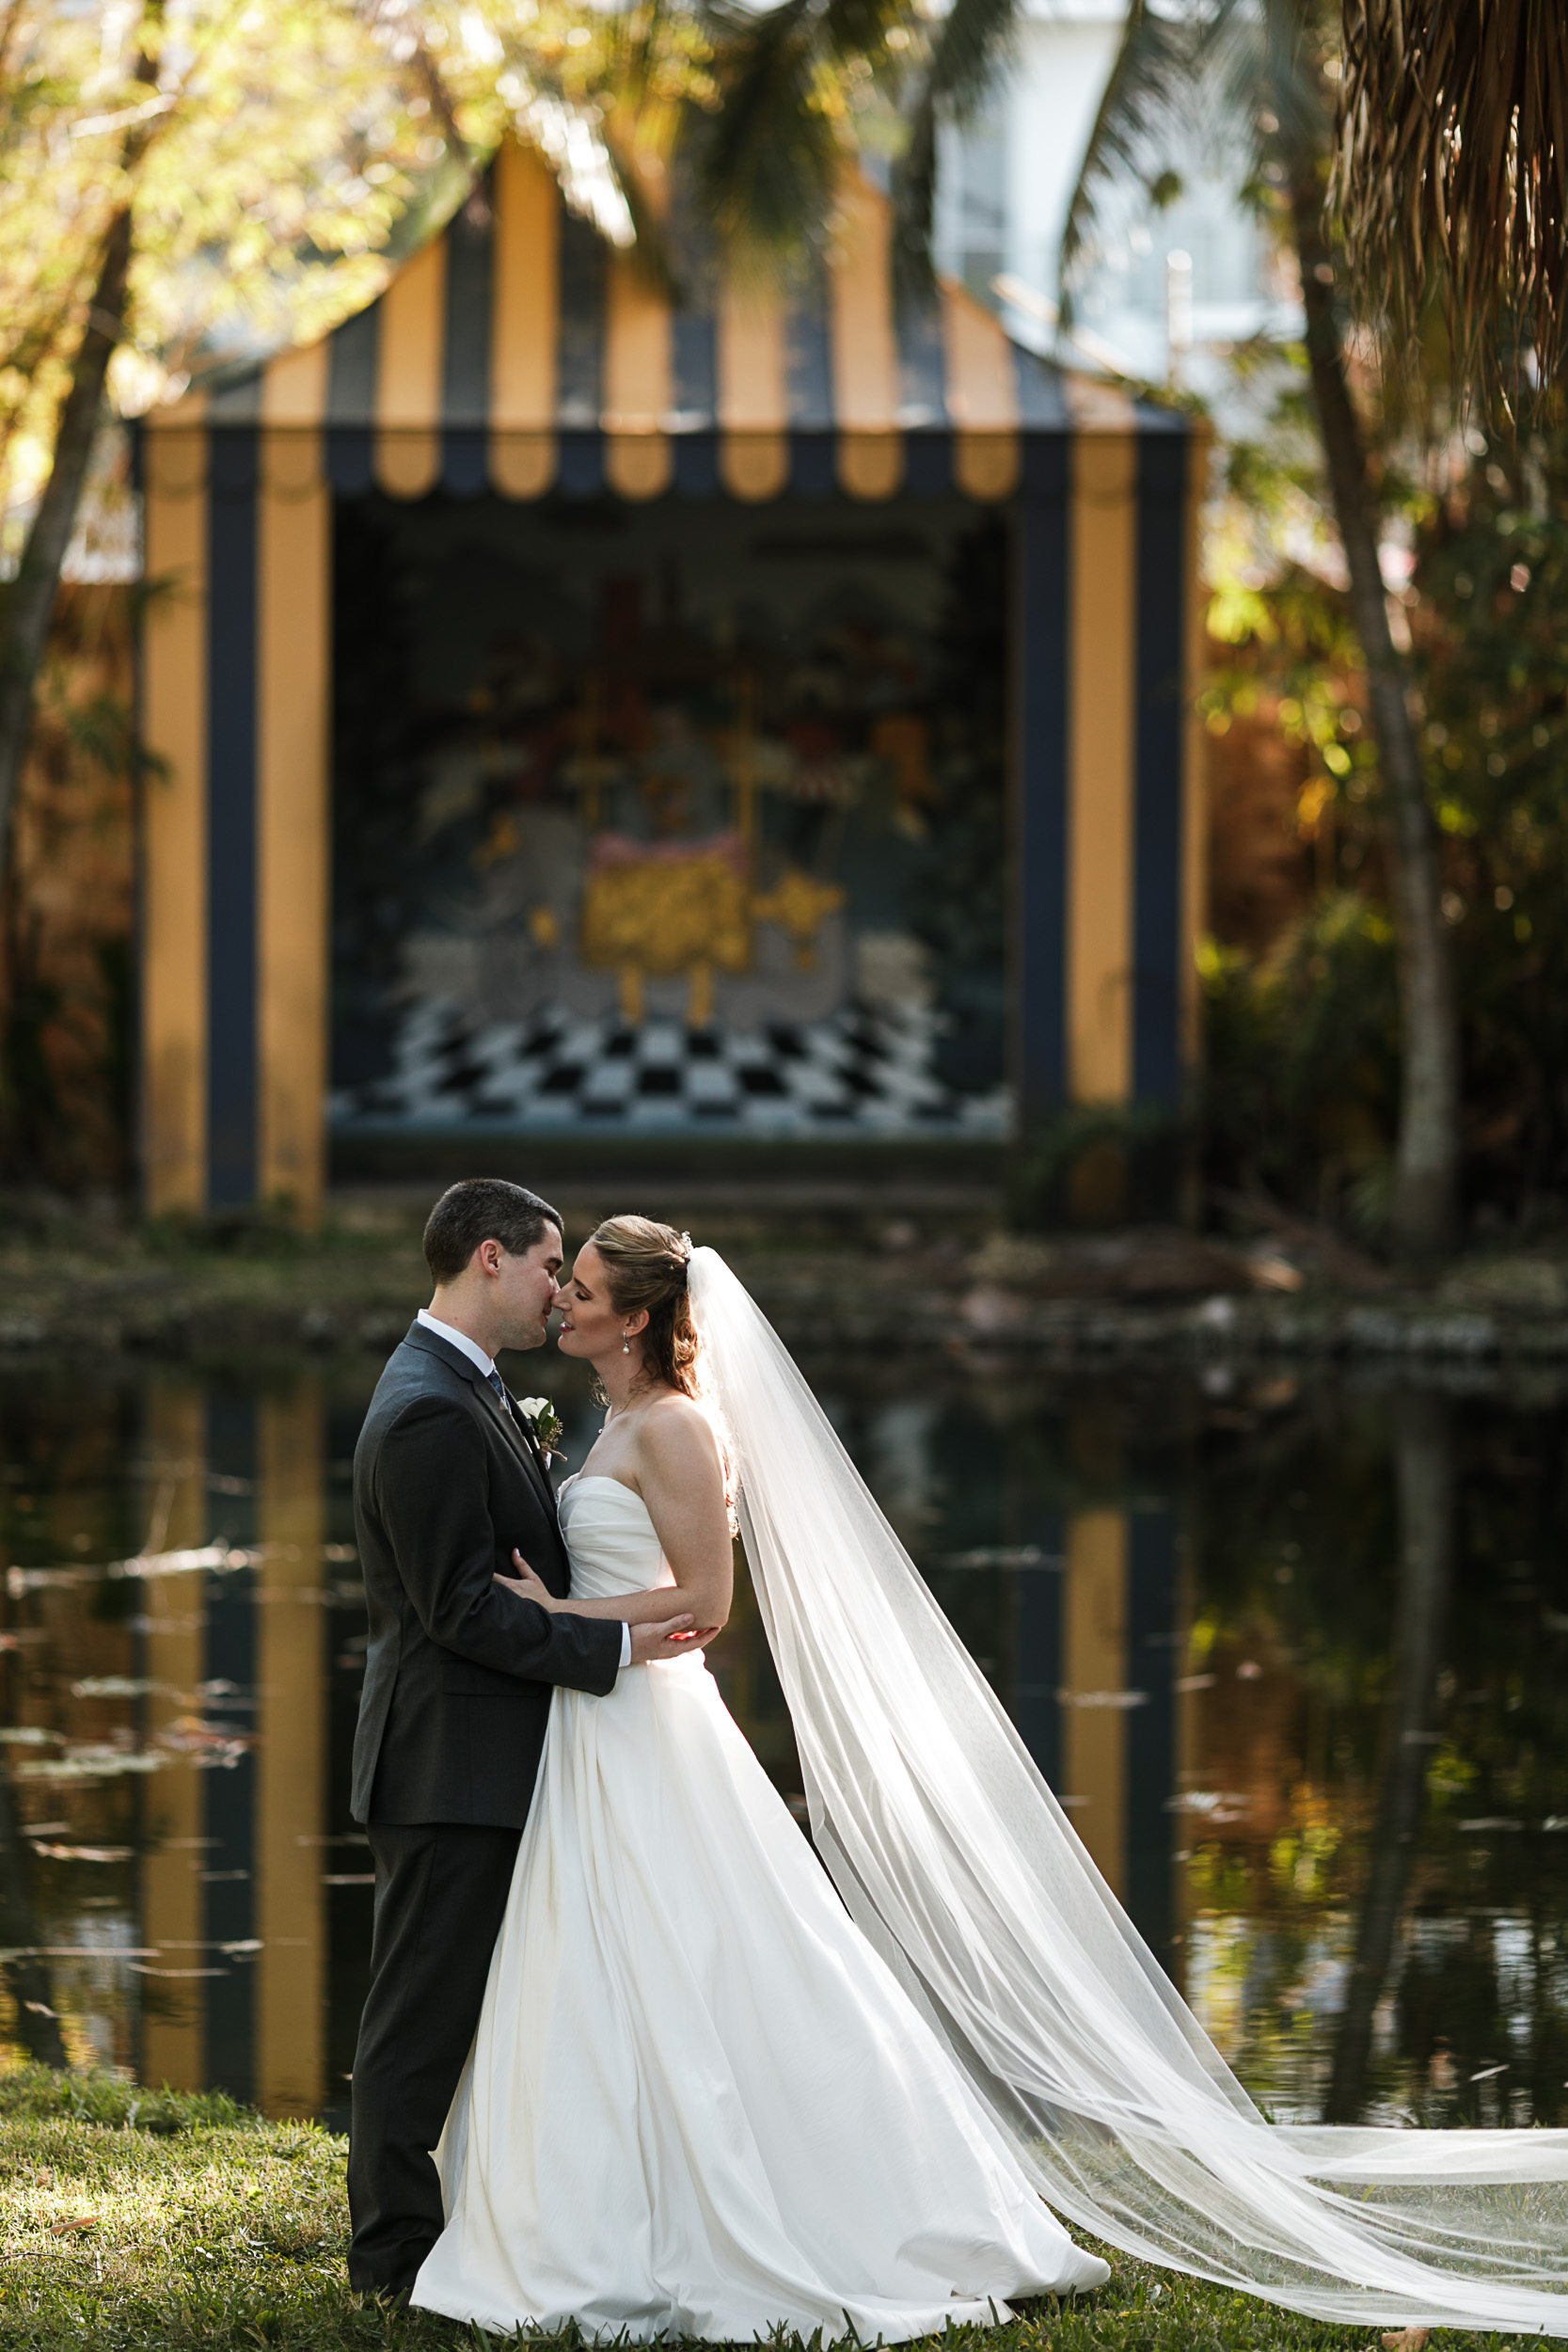 Fort-Lauderdale-Wedding-Photographer-Bonnet-House-Portraits-Near-Dry-Fountain